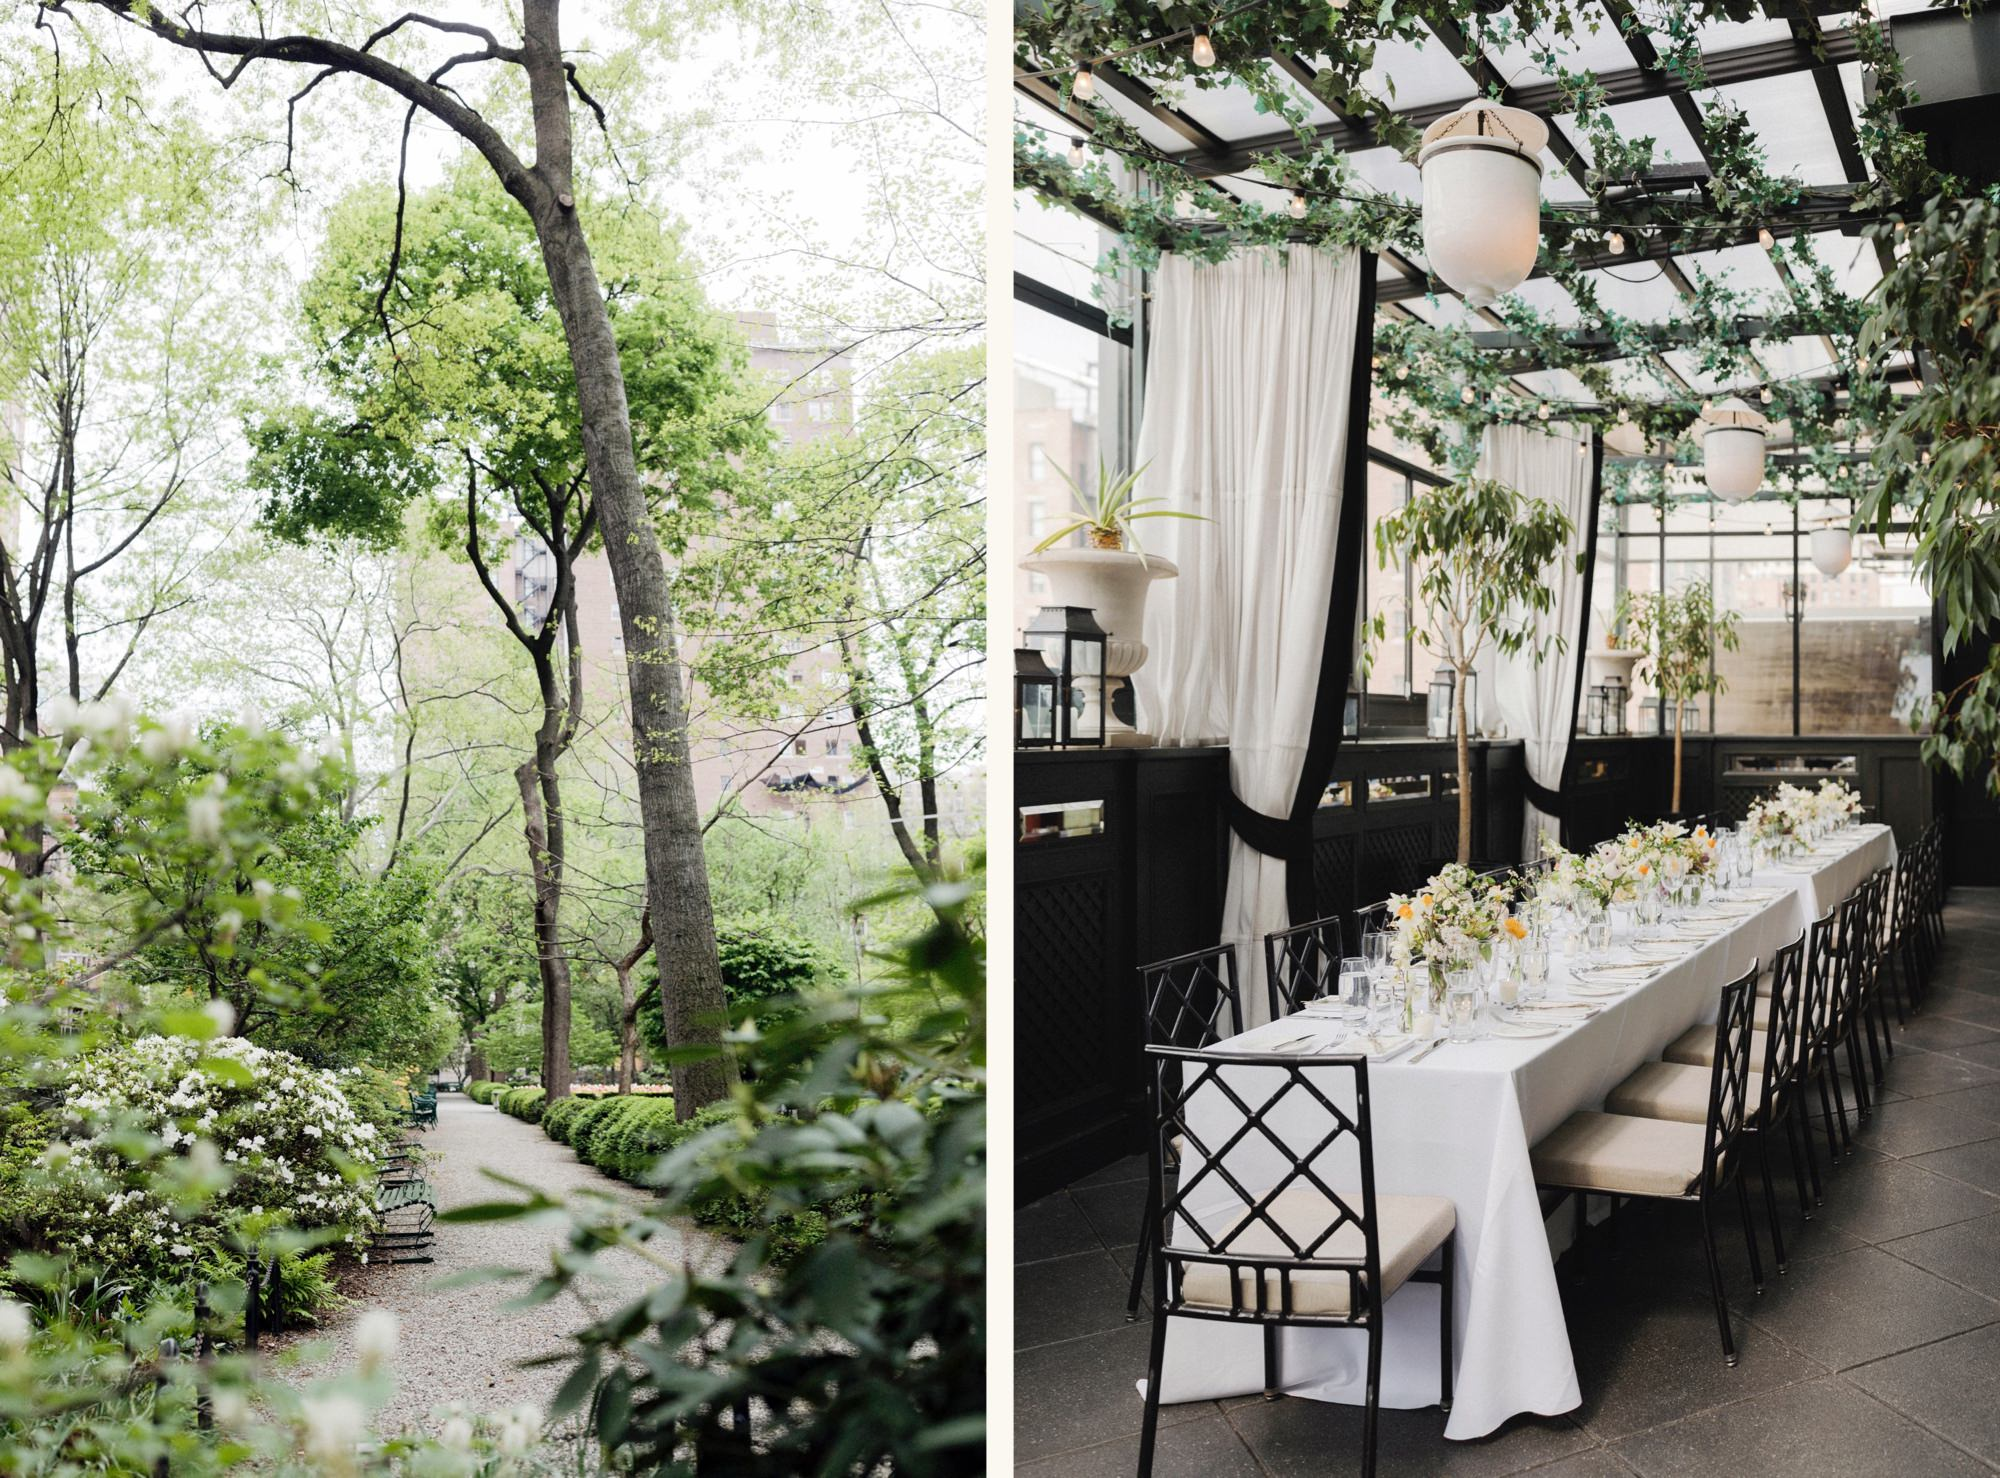 Inside Gramercy Park and Gramercy Terrace Rooftop Brunch wedding reception setup